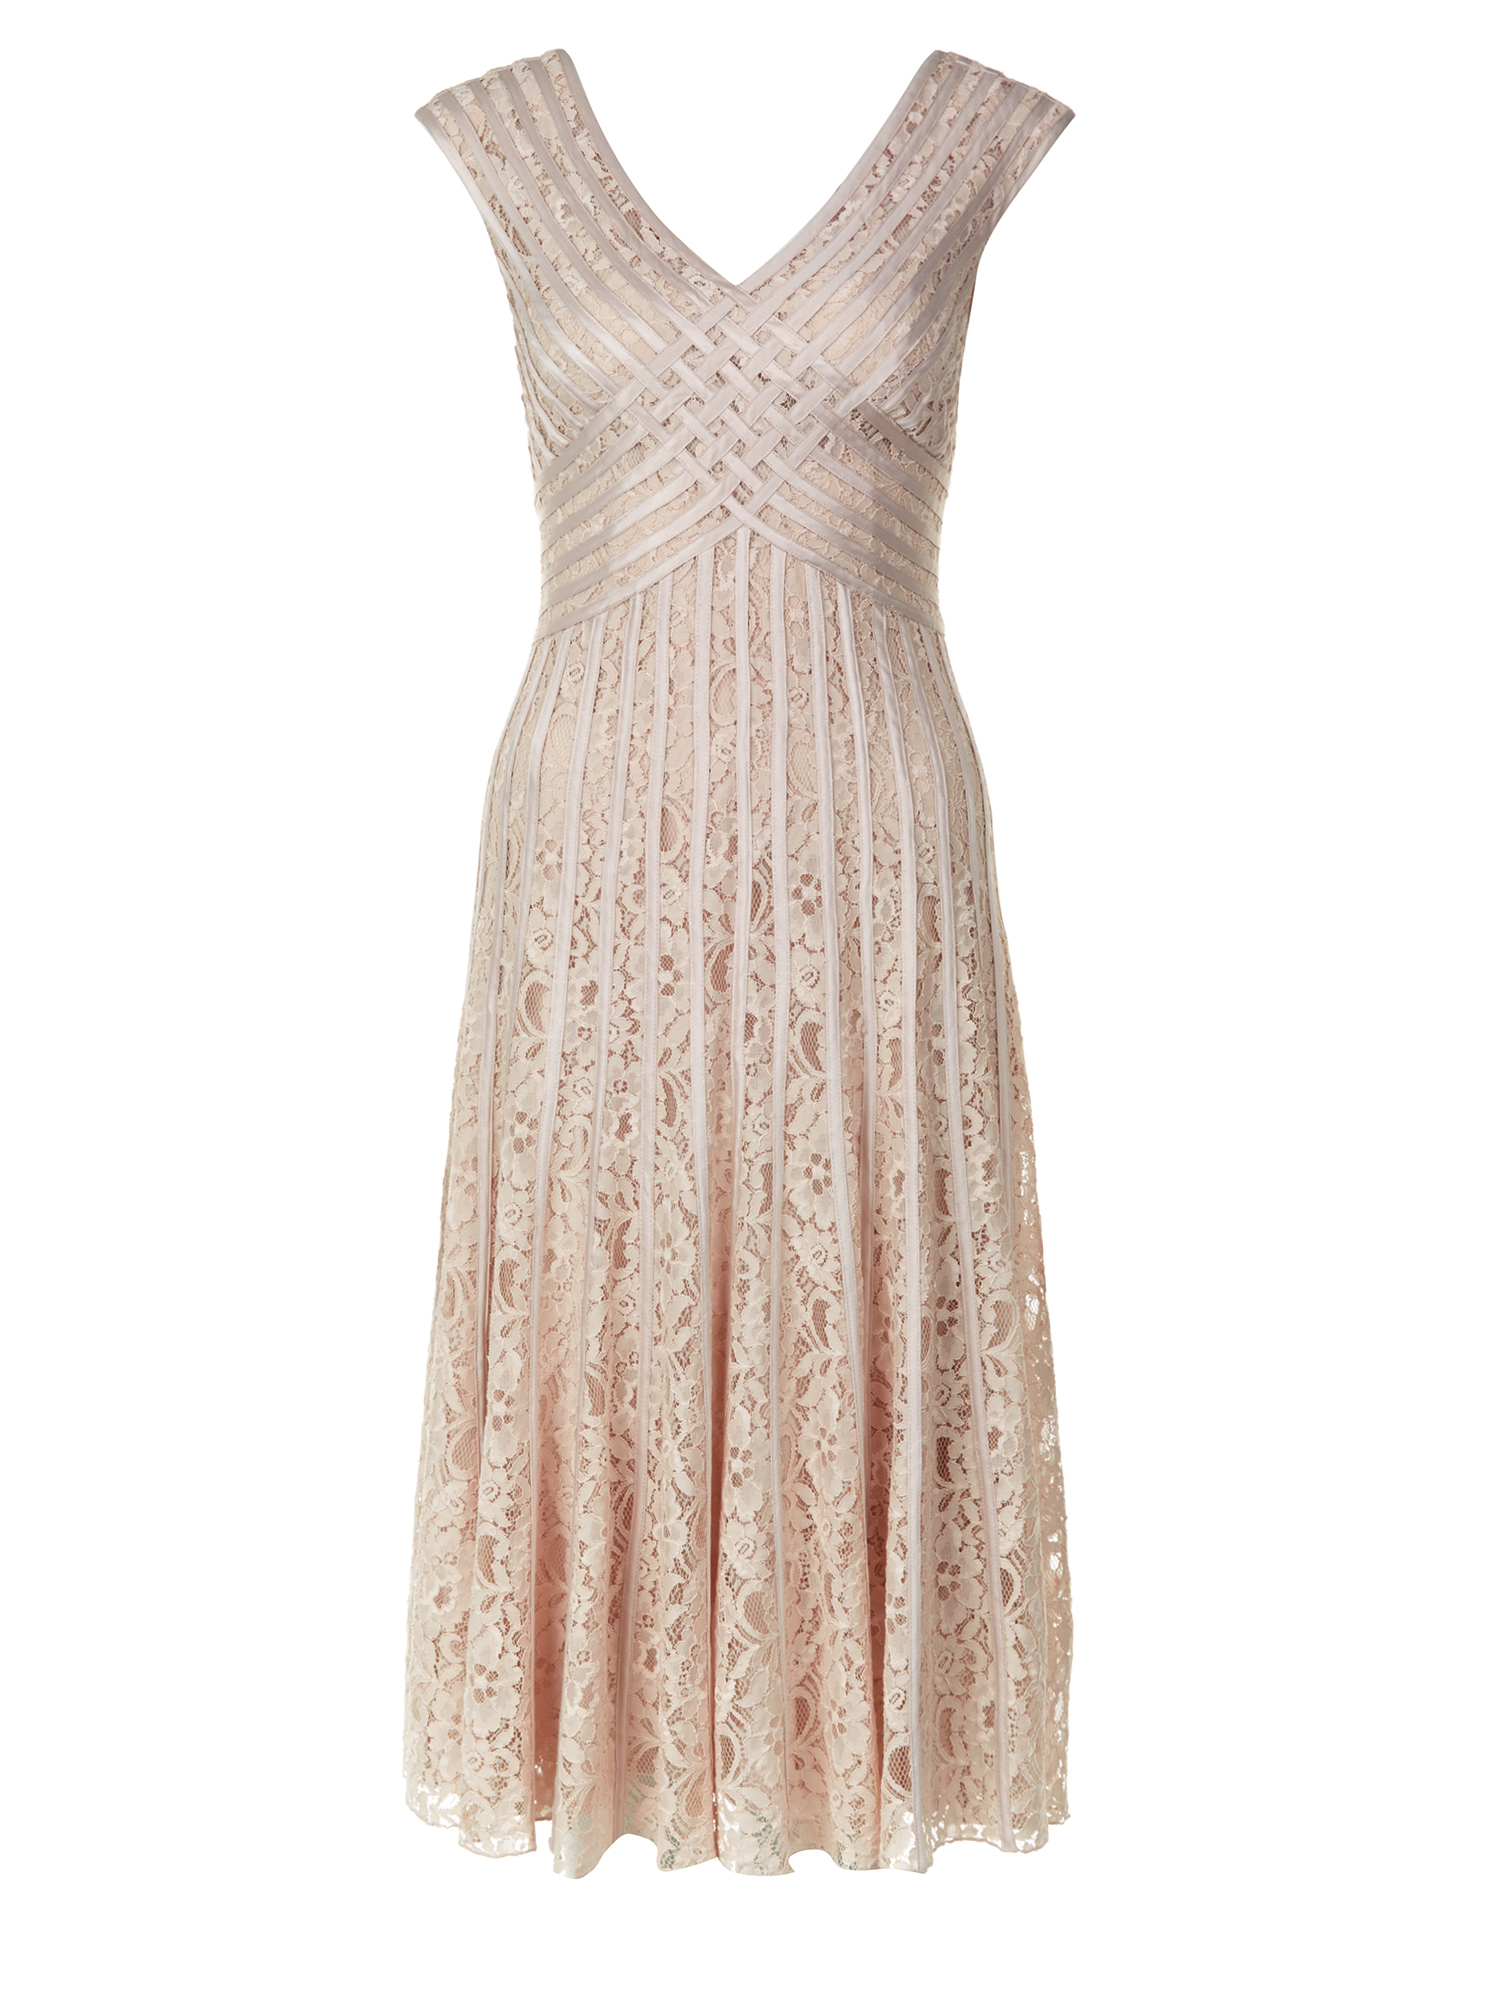 Jacques vert dresses for special occasions worth buying for Beige dress for wedding guest